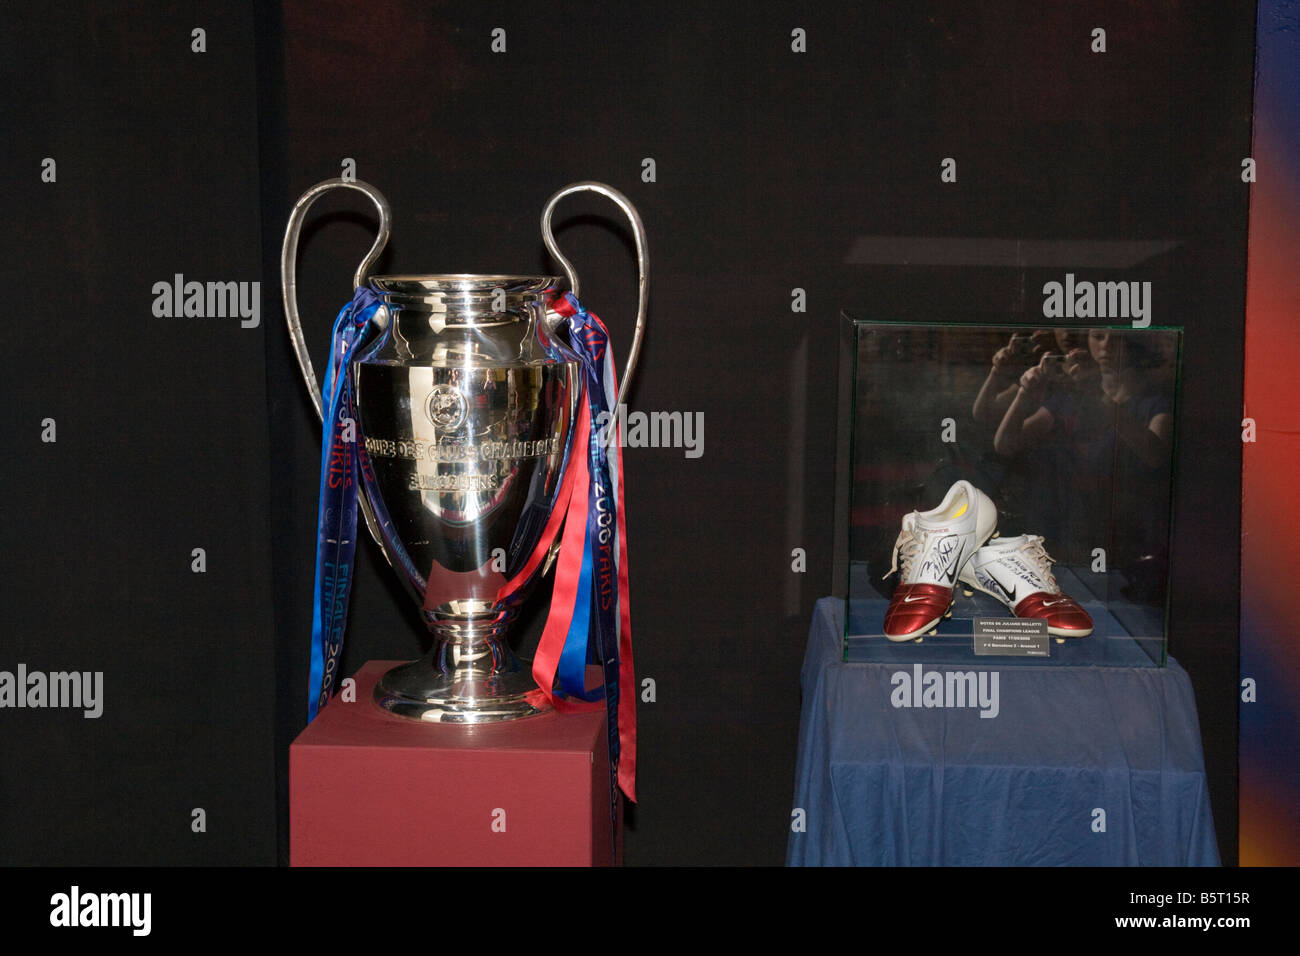 Barcelona Trophy Cabinet Display Win In Paris Cup Football